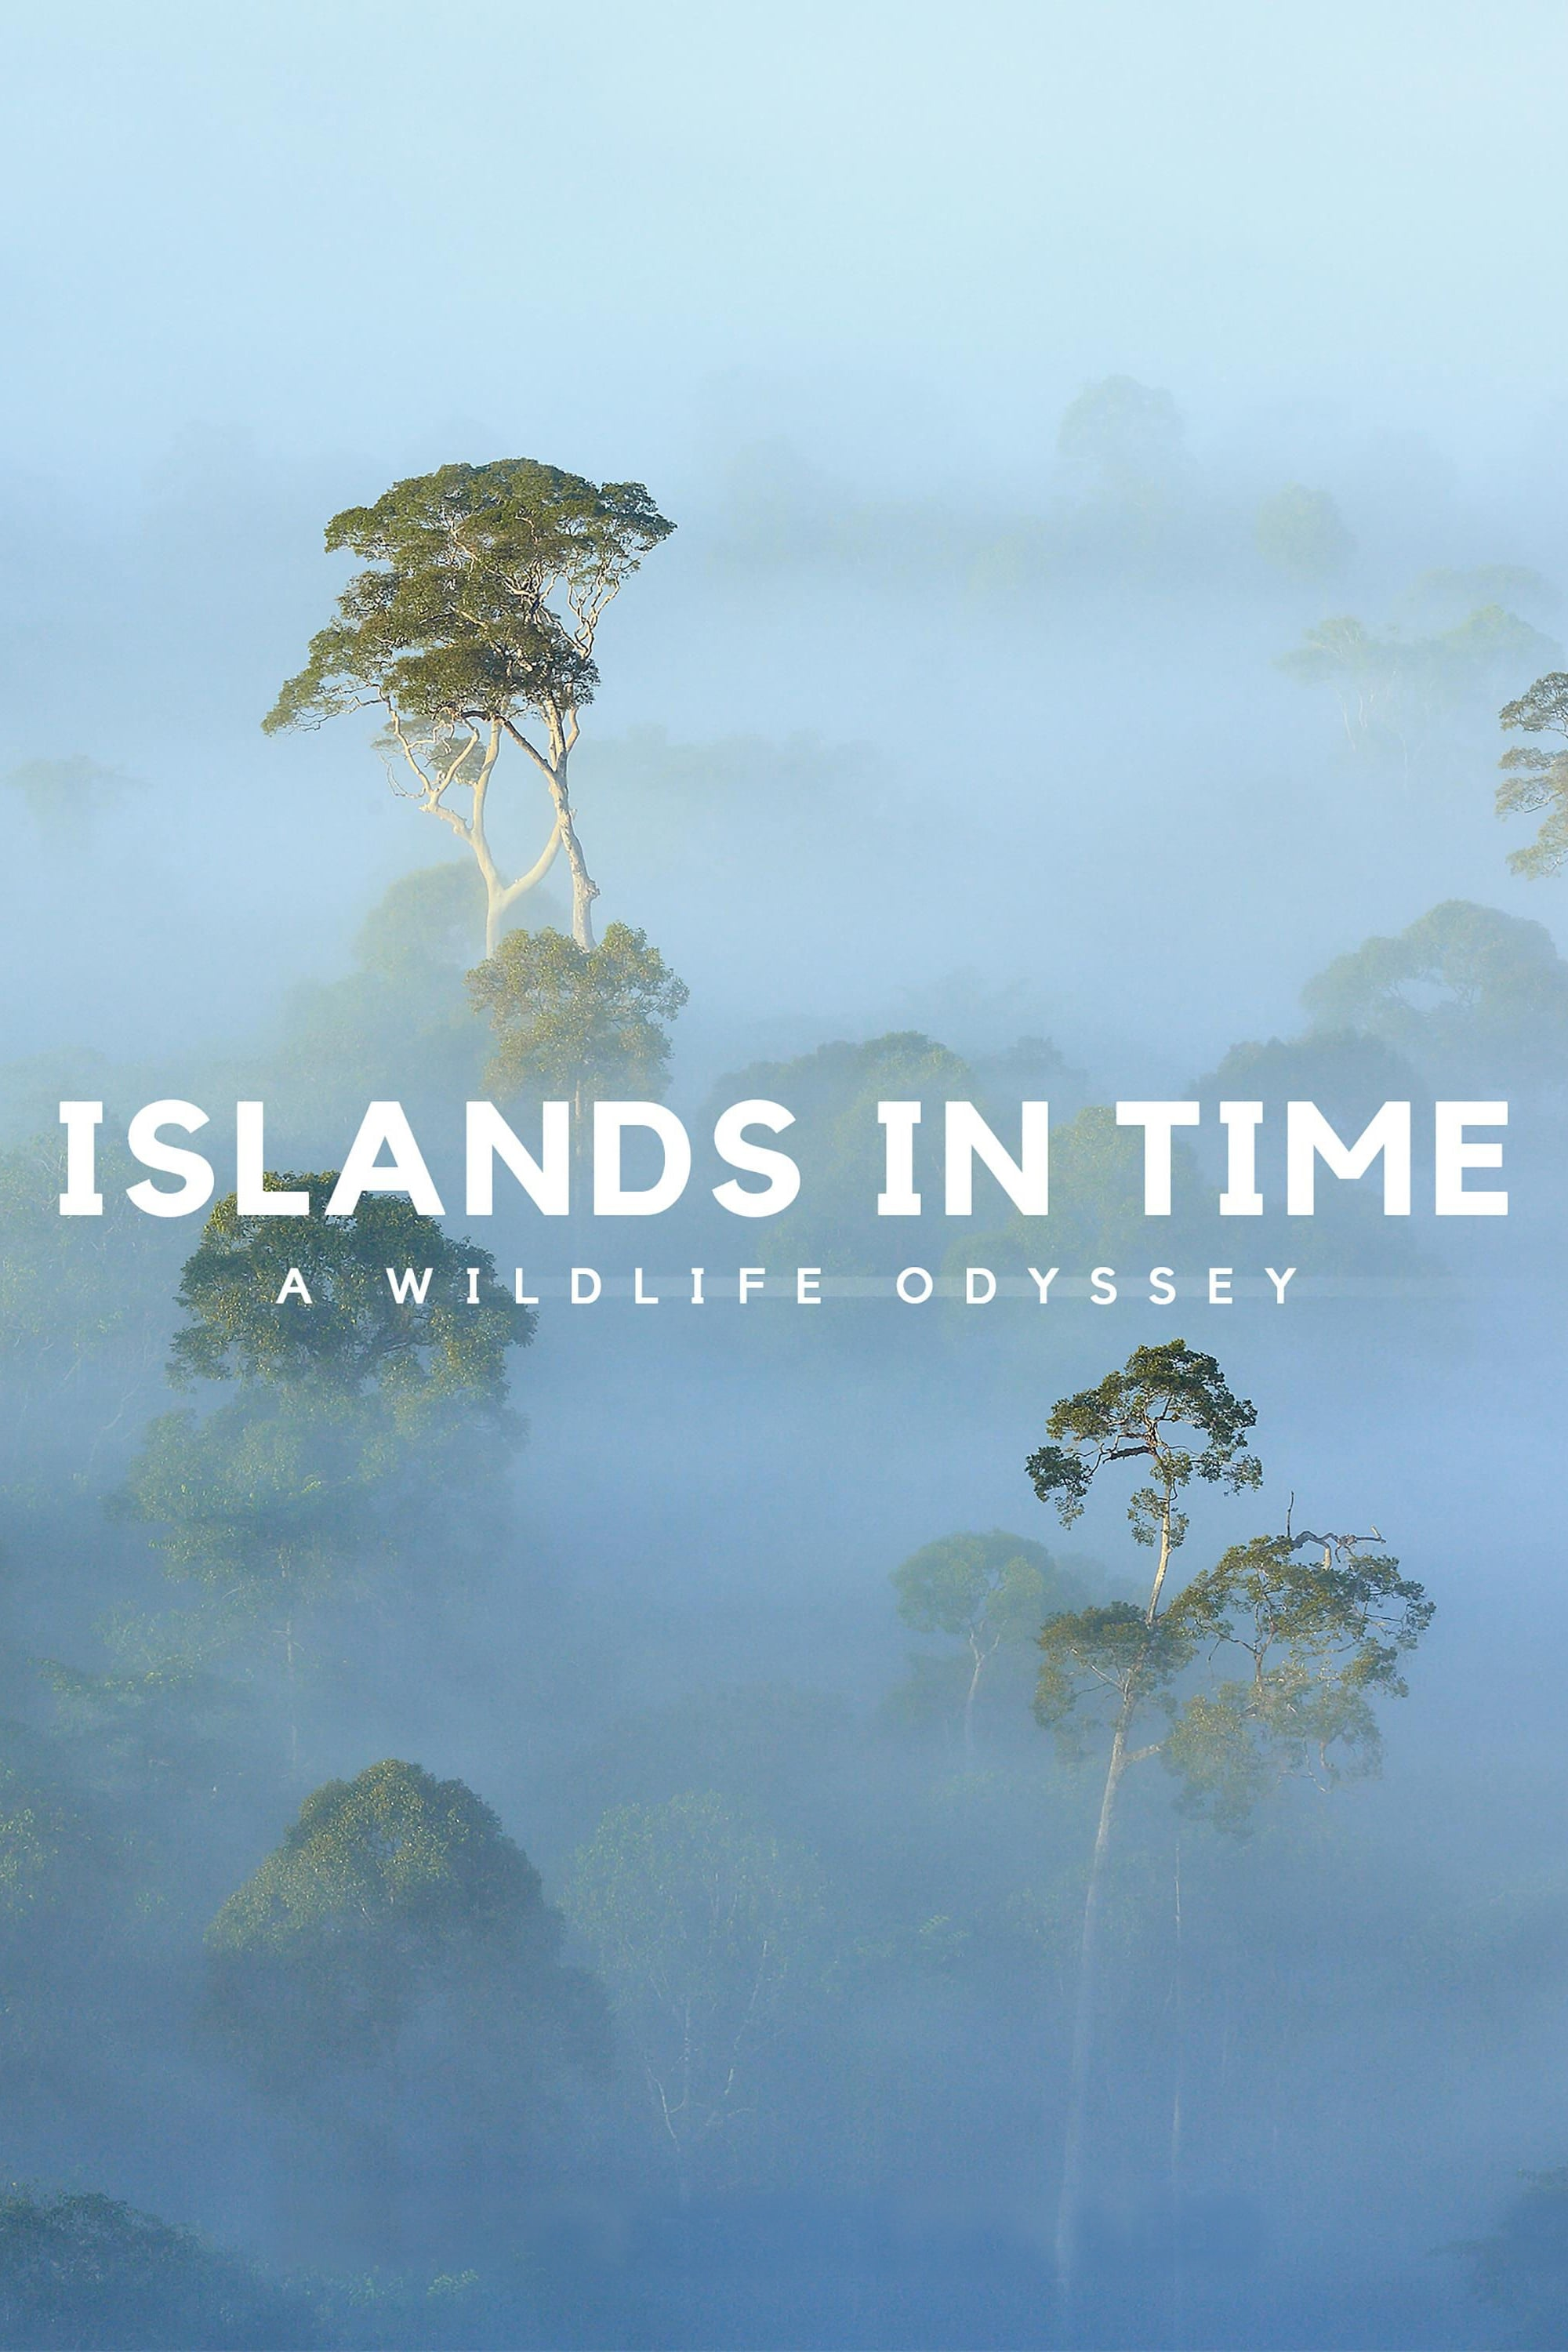 Islands in Time: A Wildlife Odyssey (2017)